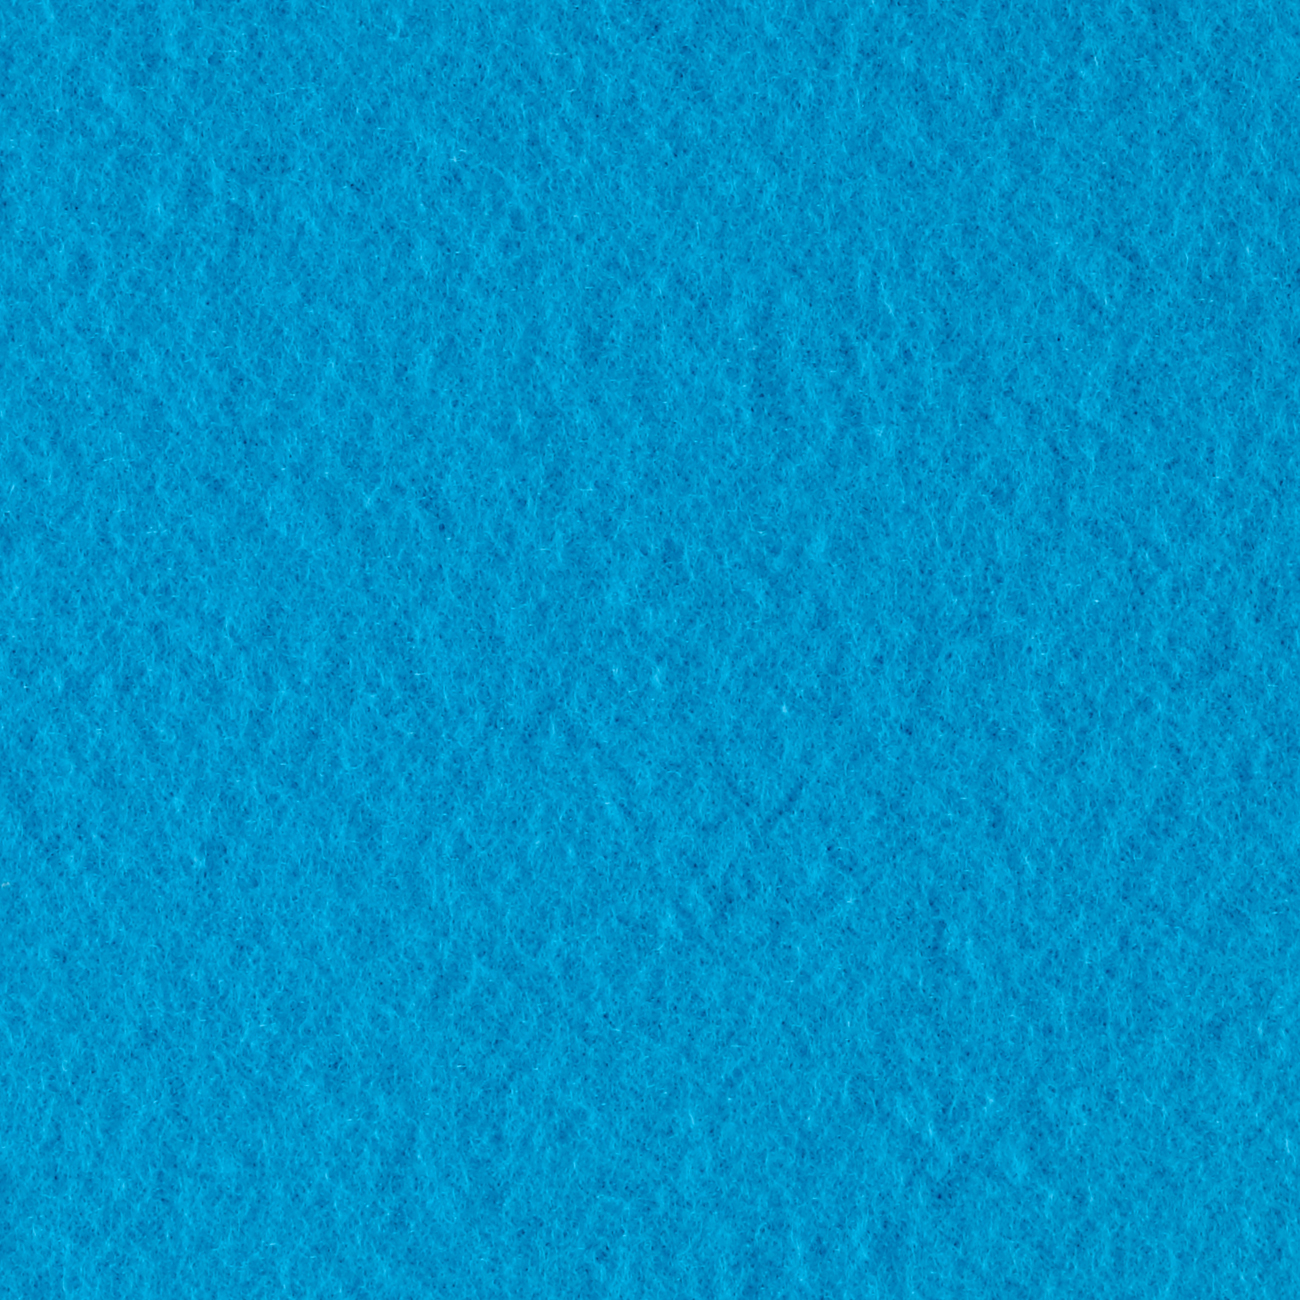 Solid Fleece Cool Turquoise Fabric by Textile Creations in USA